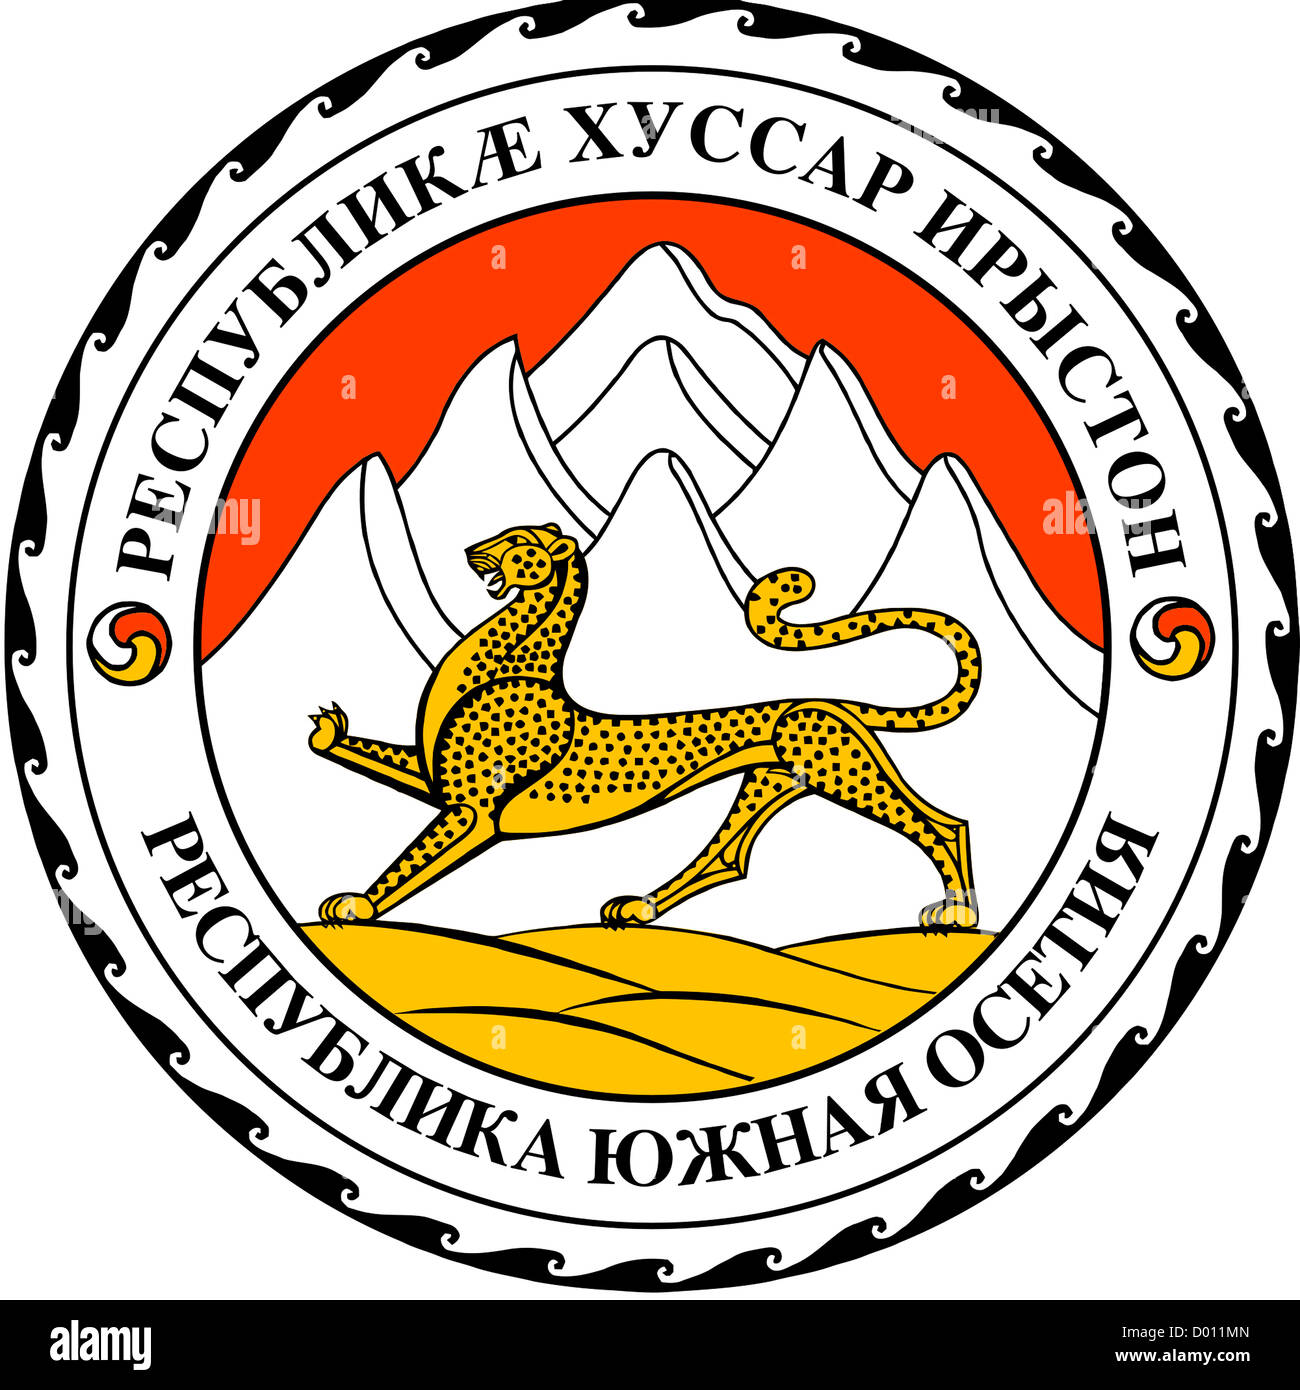 Coat of arms of South Ossetia. - Stock Image